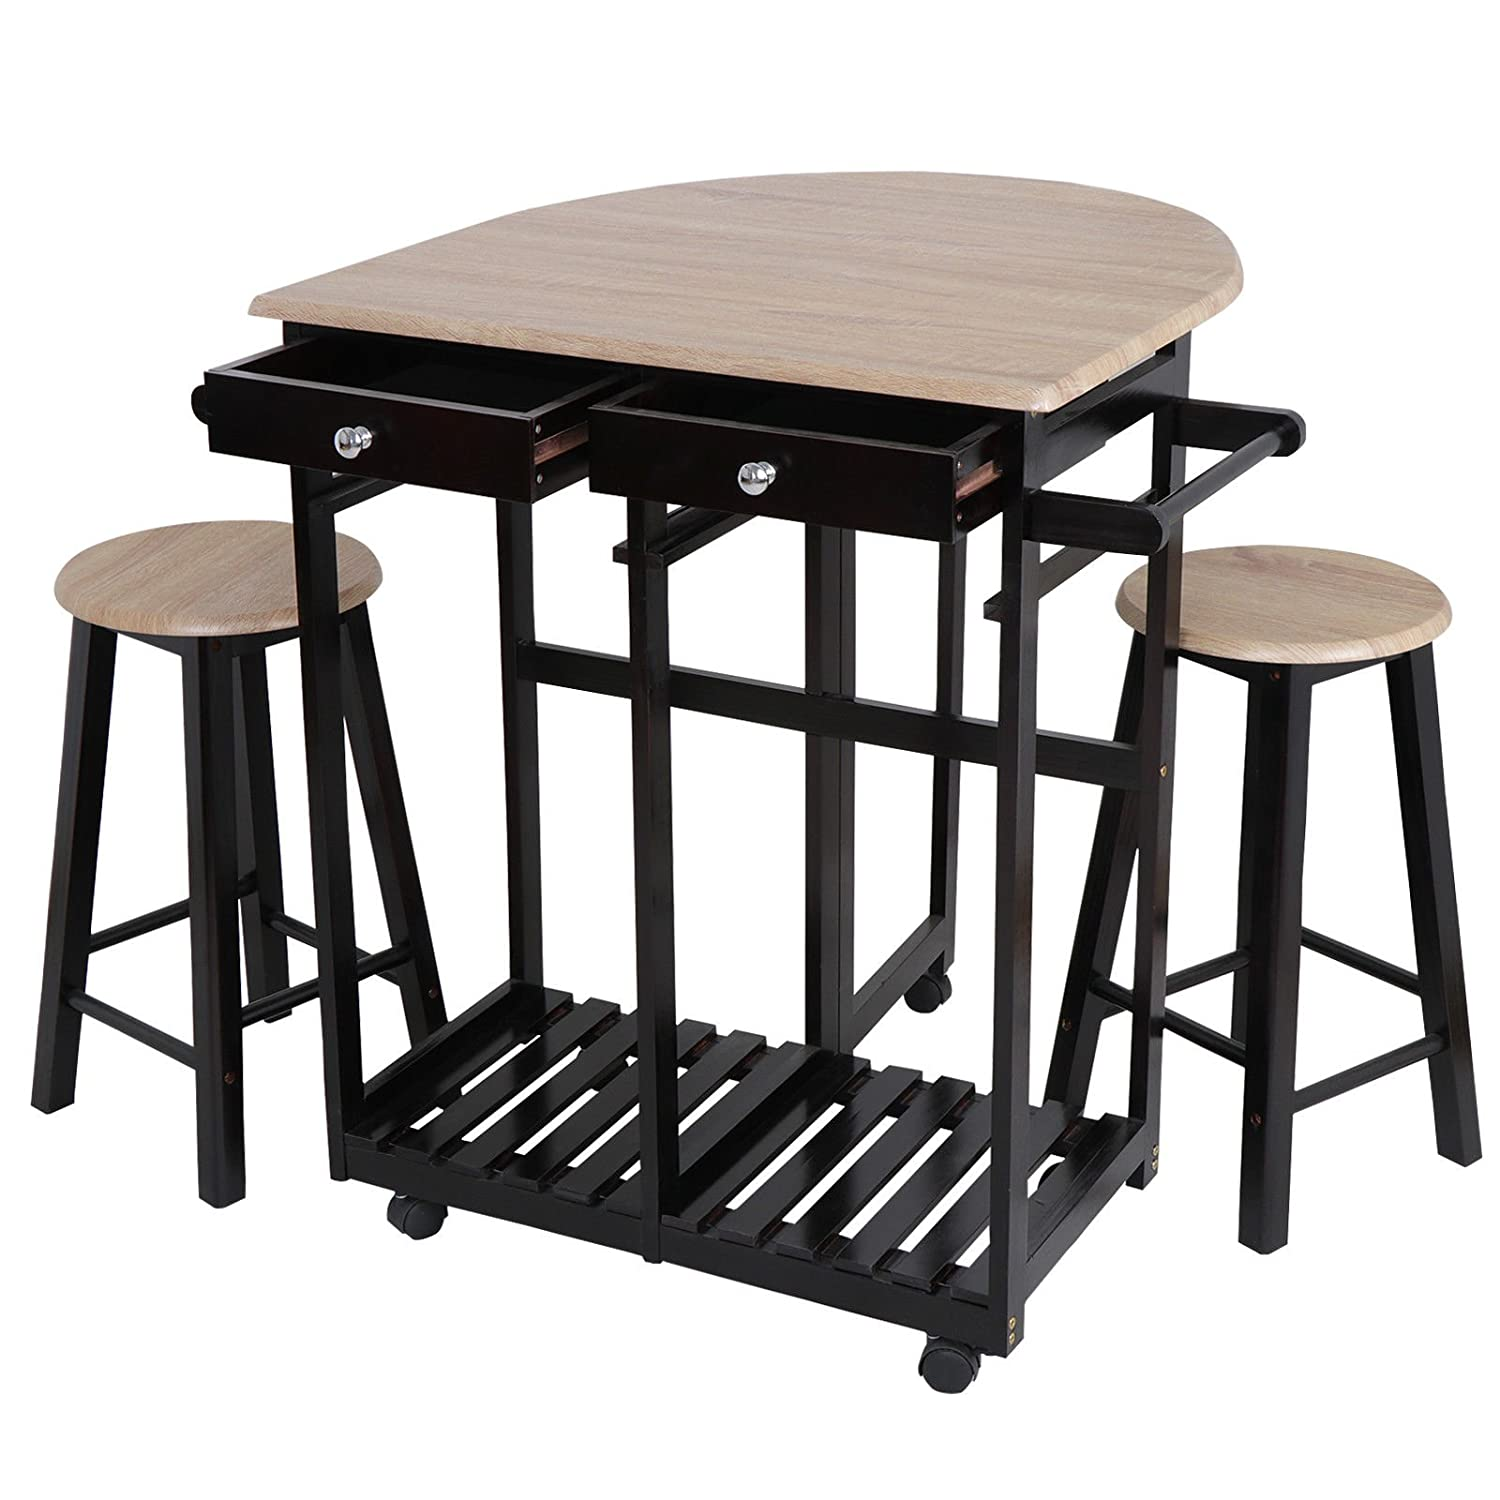 Has_Shop Dining Table Set Wood Space Saving Foldable Tabletop Kitchen Island W/ 2 Stools